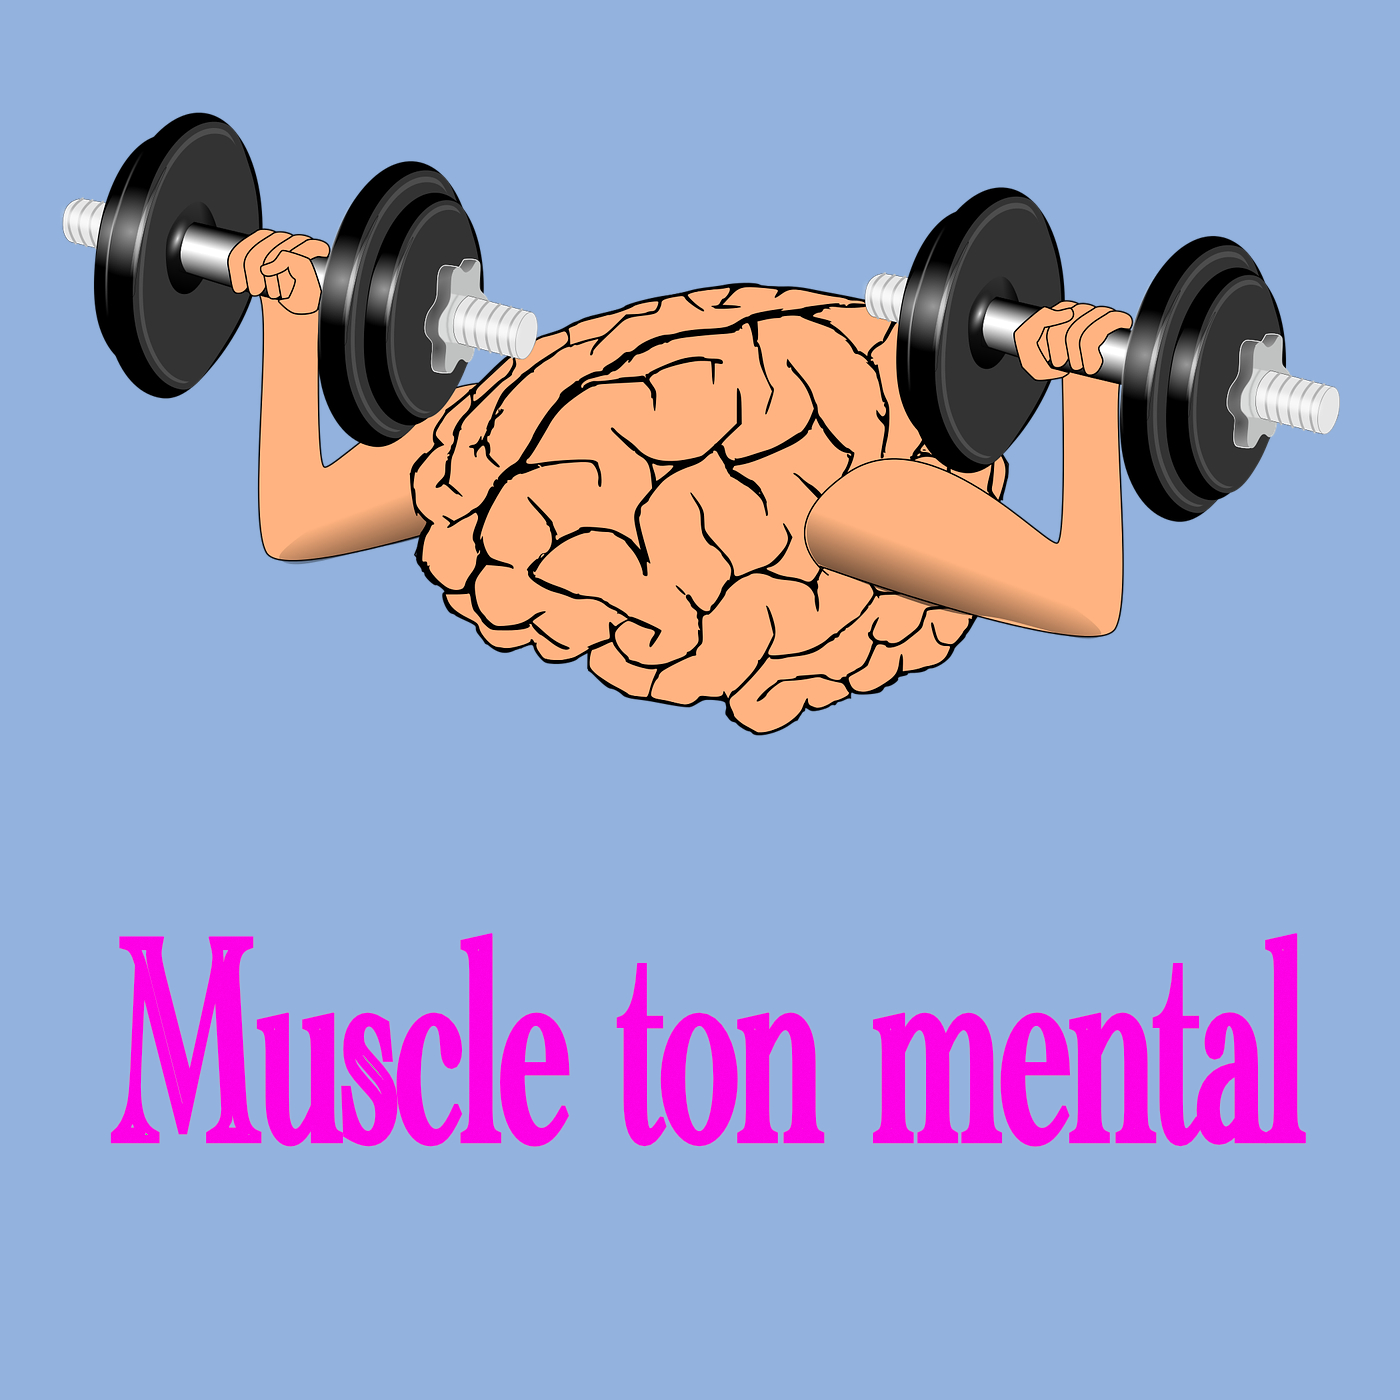 Muscle ton mental